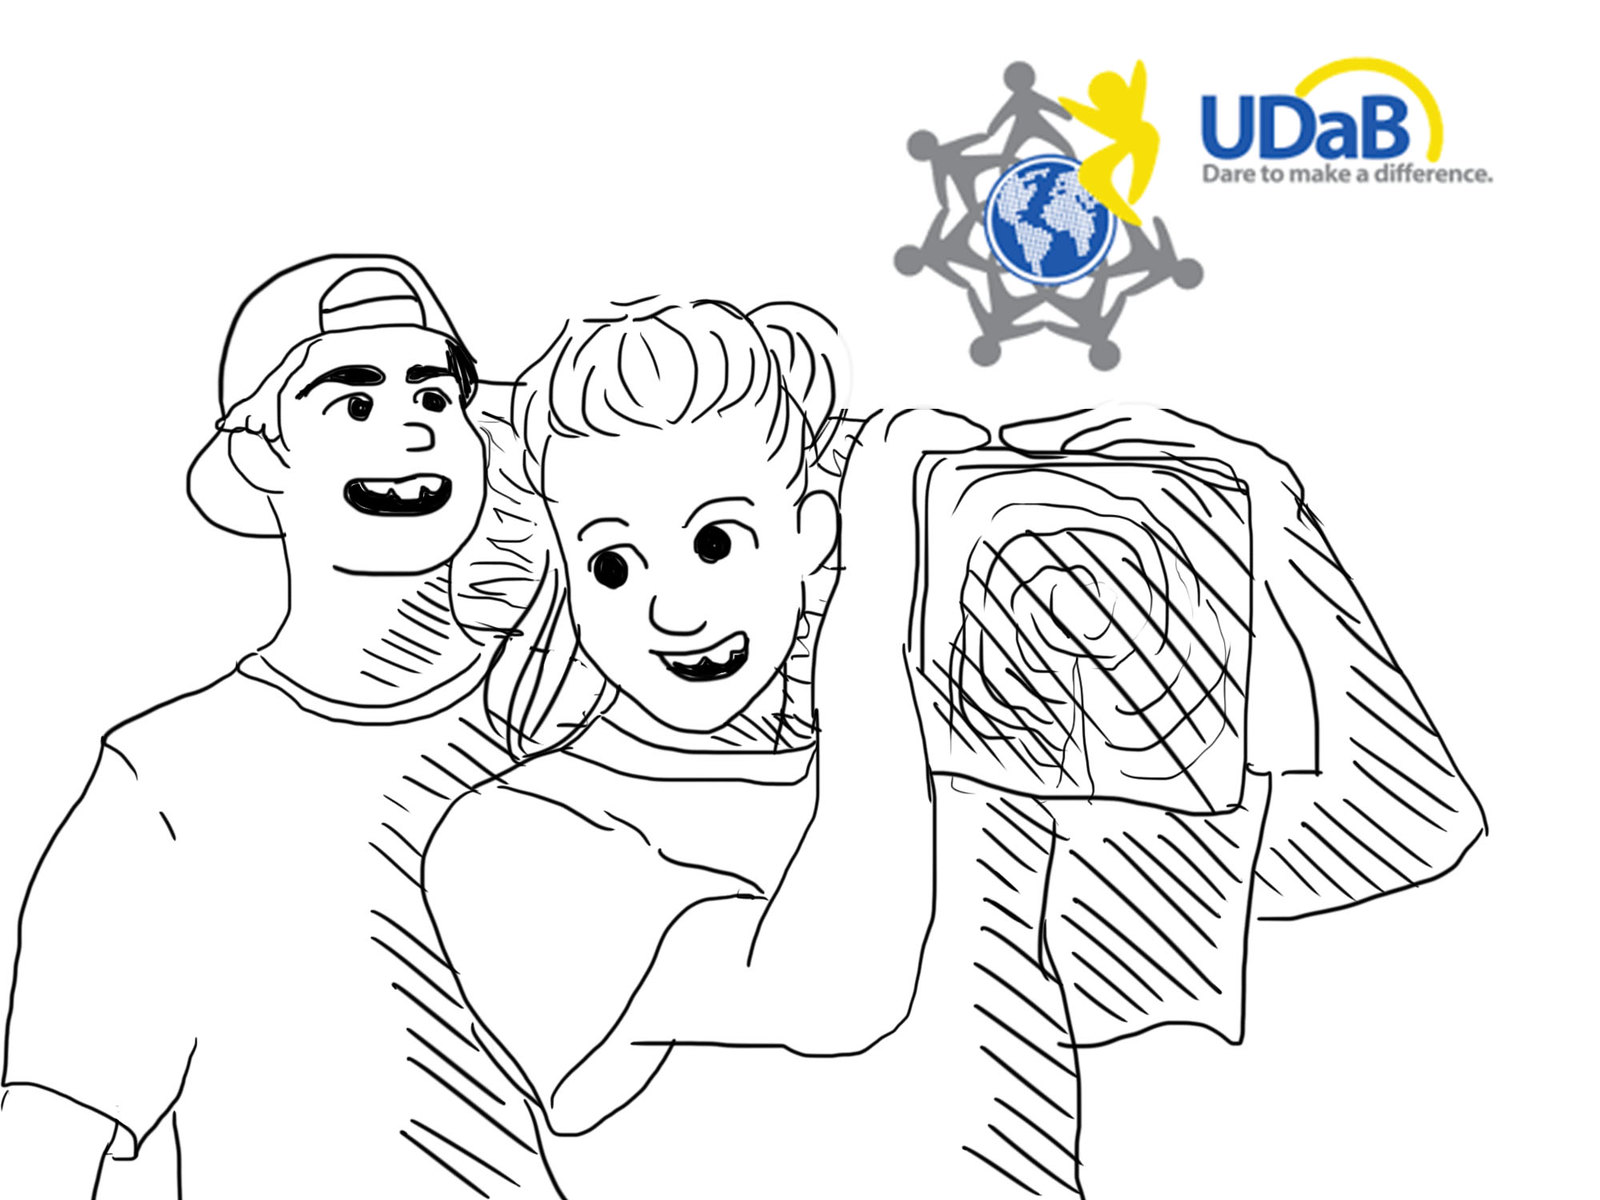 UDaB moves departments, looks to increase diversity